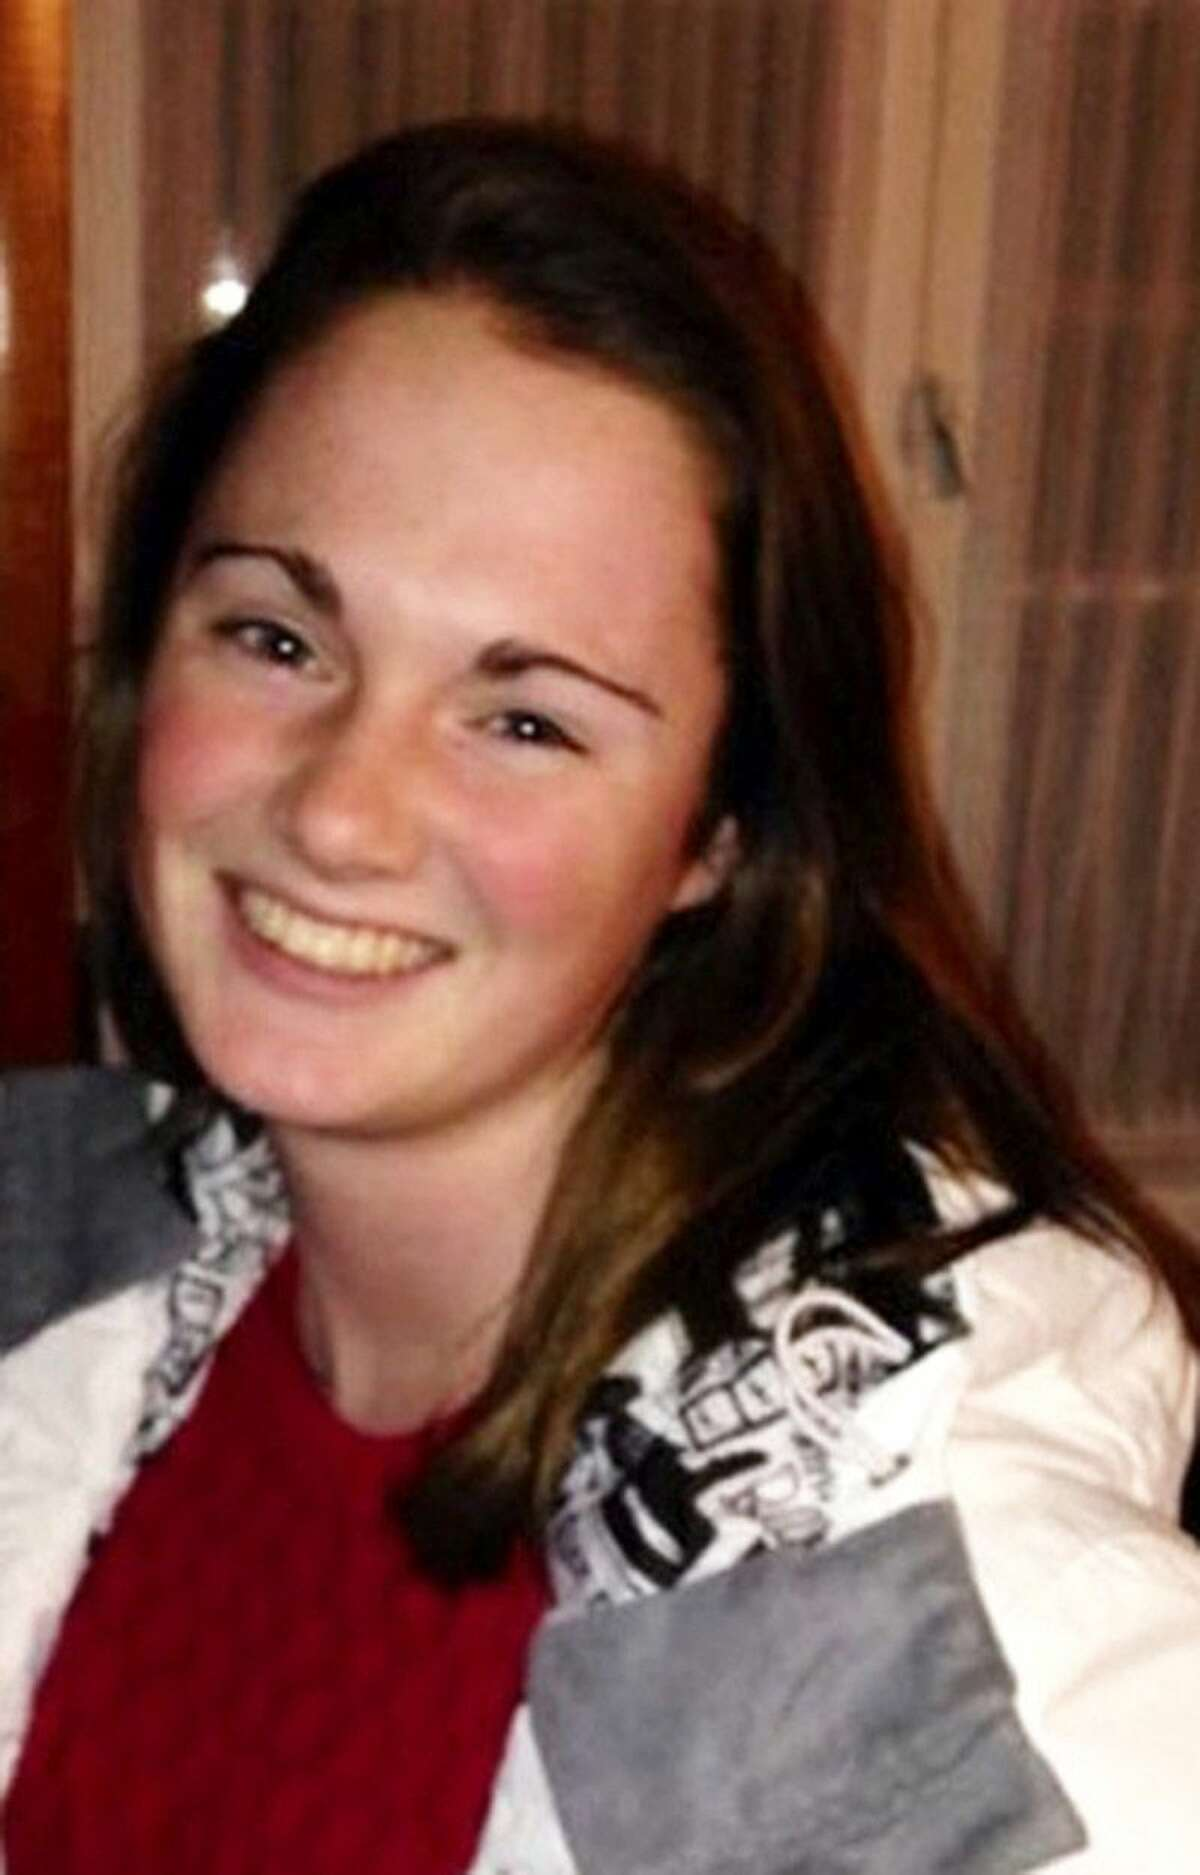 Missing University of Virginia student Hannah Elizabeth Graham is seen in an undated photo provided by the Charlottesville, Va., Police Department. Searchers found human remains on Saturday, Oct. 18, 2014, that could be those of the University of Virginia sophomore who has been missing since Sept. 13, police said. Further forensic tests are needed to confirm whether the remains are those of Graham, Charlottesville Police Chief Tim Longo told a news conference.